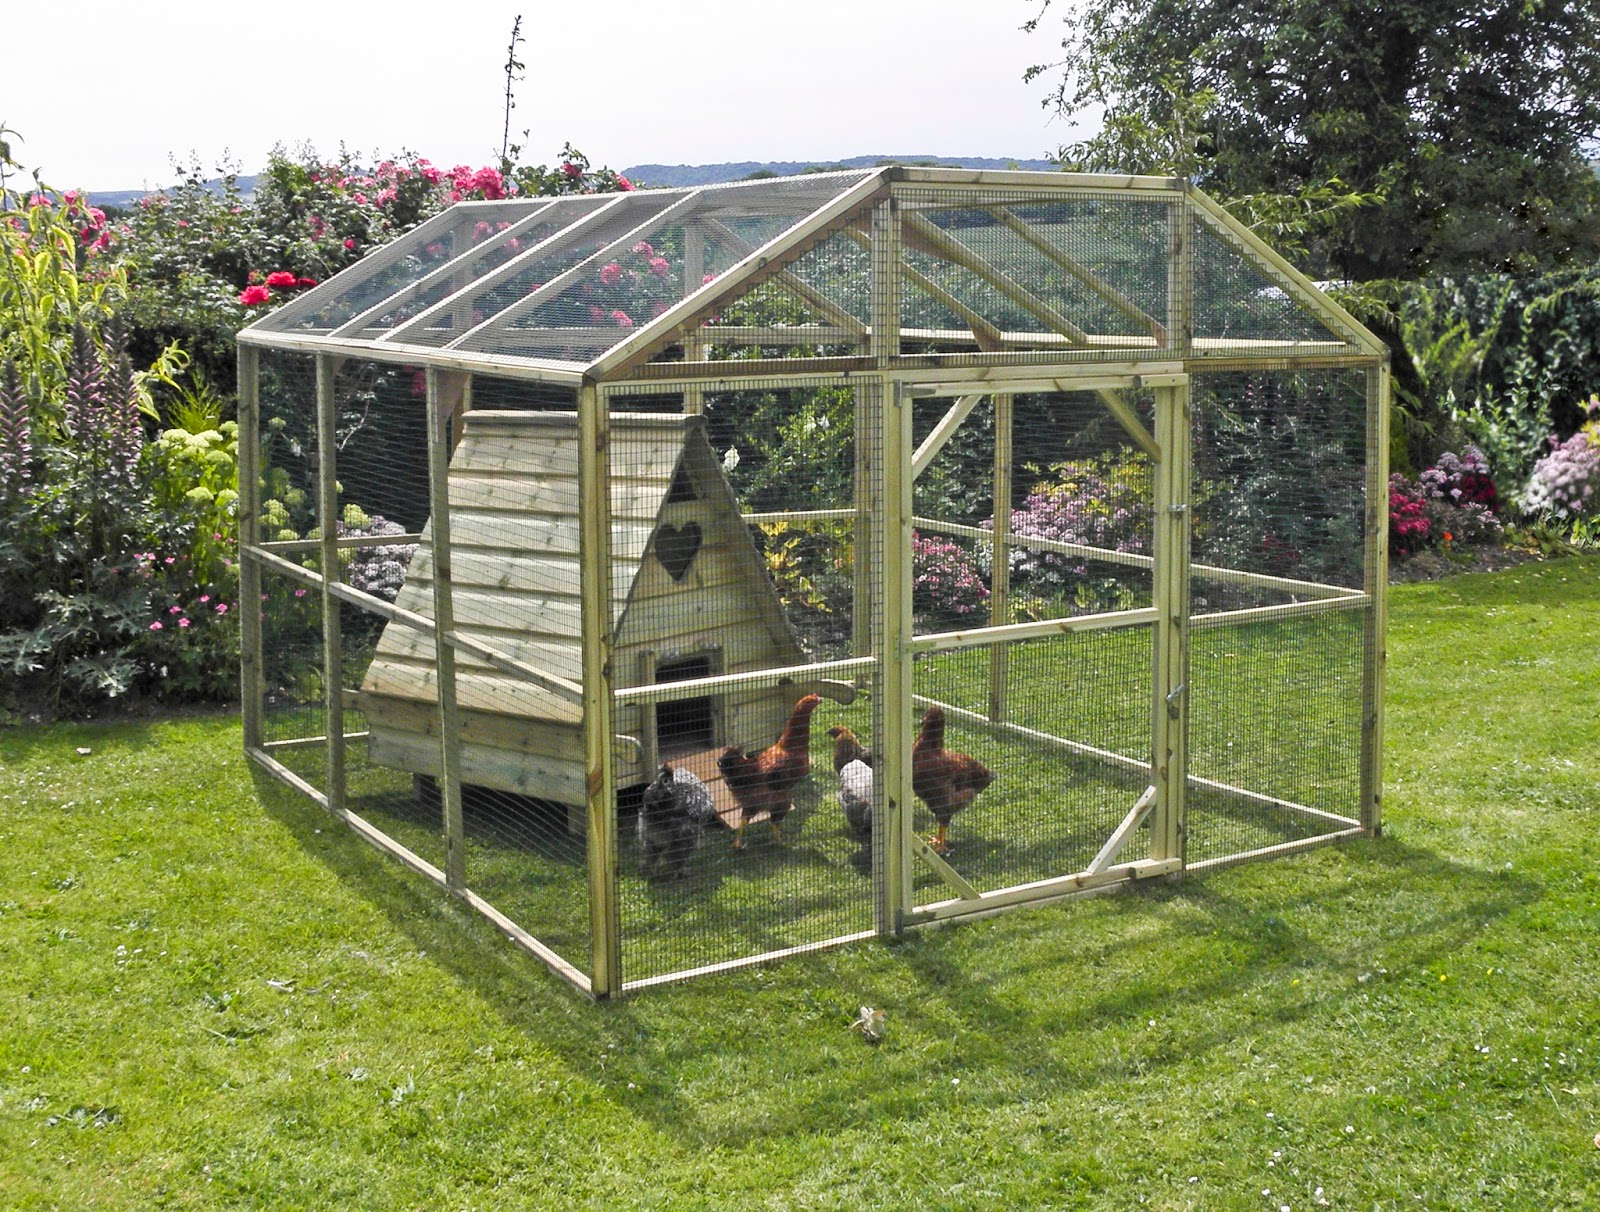 Flyte so fancy predator proof hen houses made in the uk for Fancy chicken coops